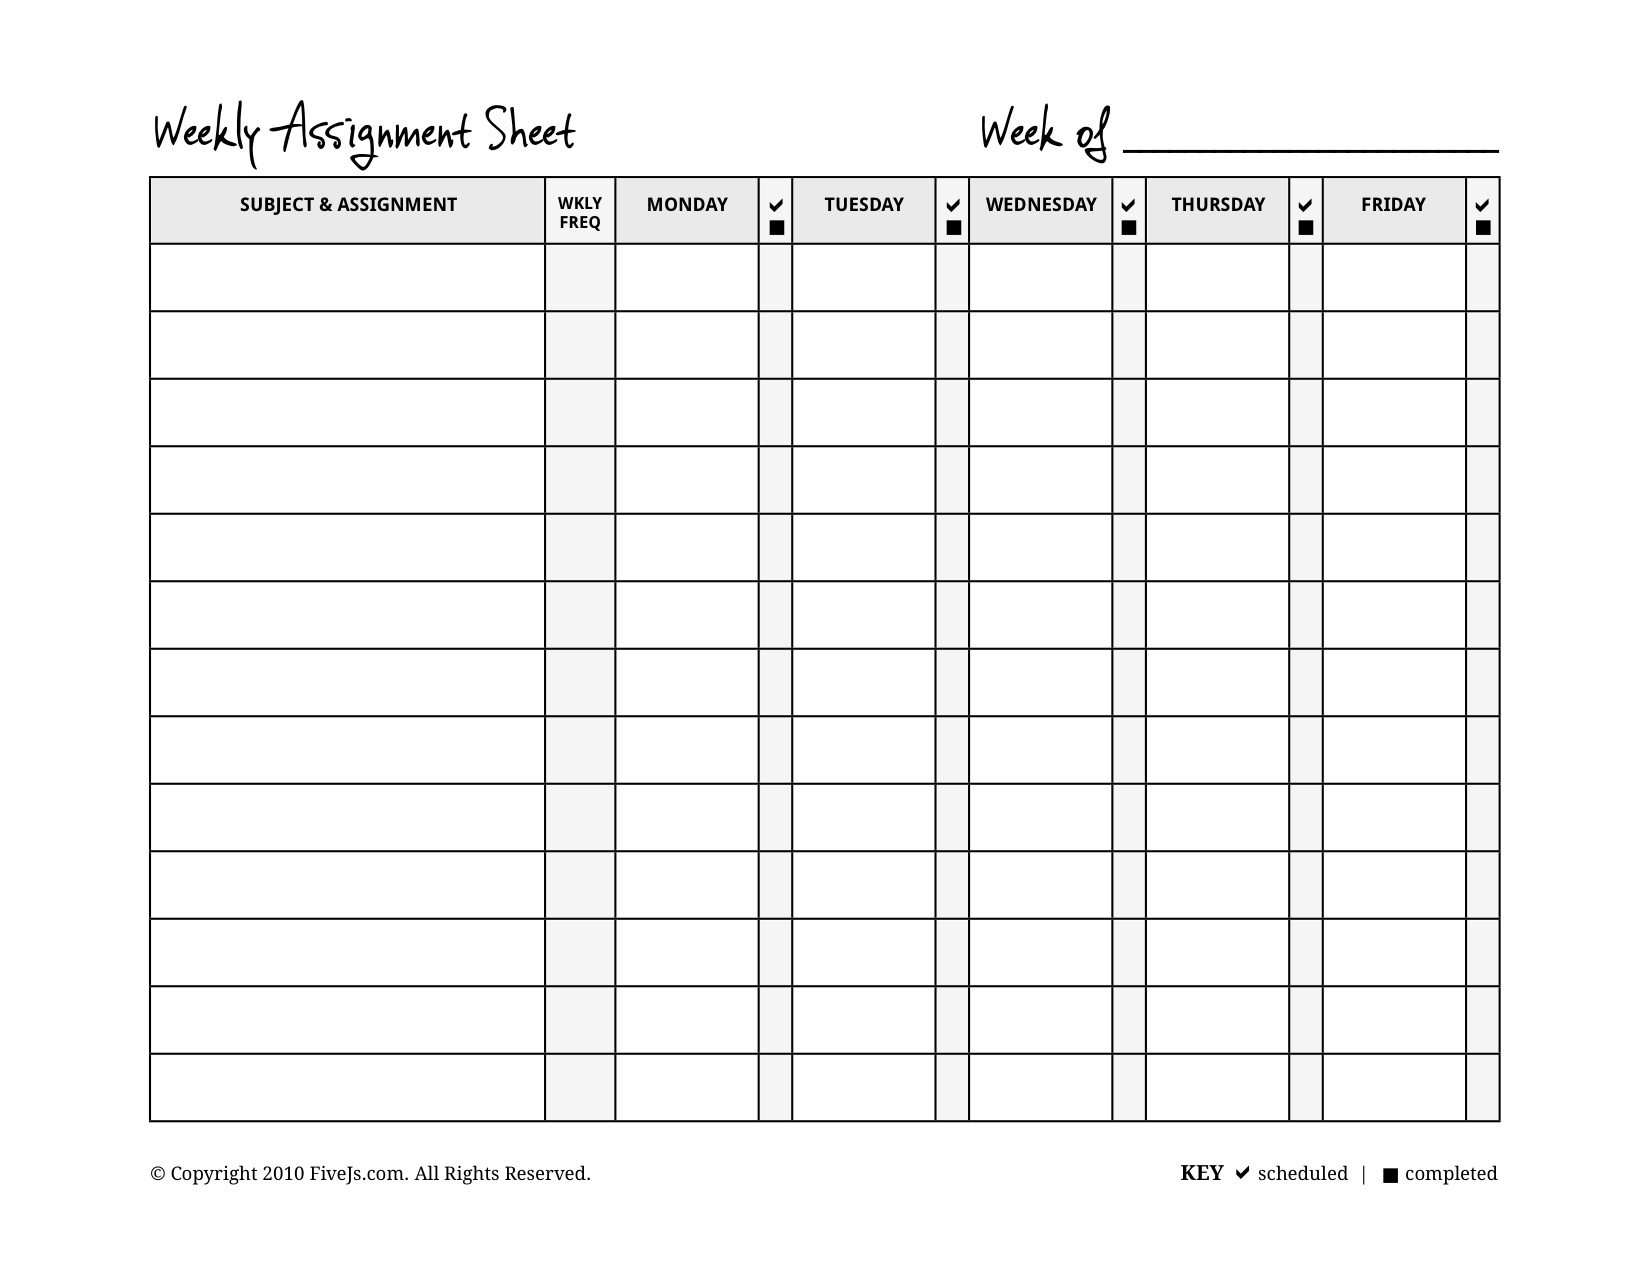 graphic regarding Homework Planner Printable titled Homeschool Weekly Assignment Planner